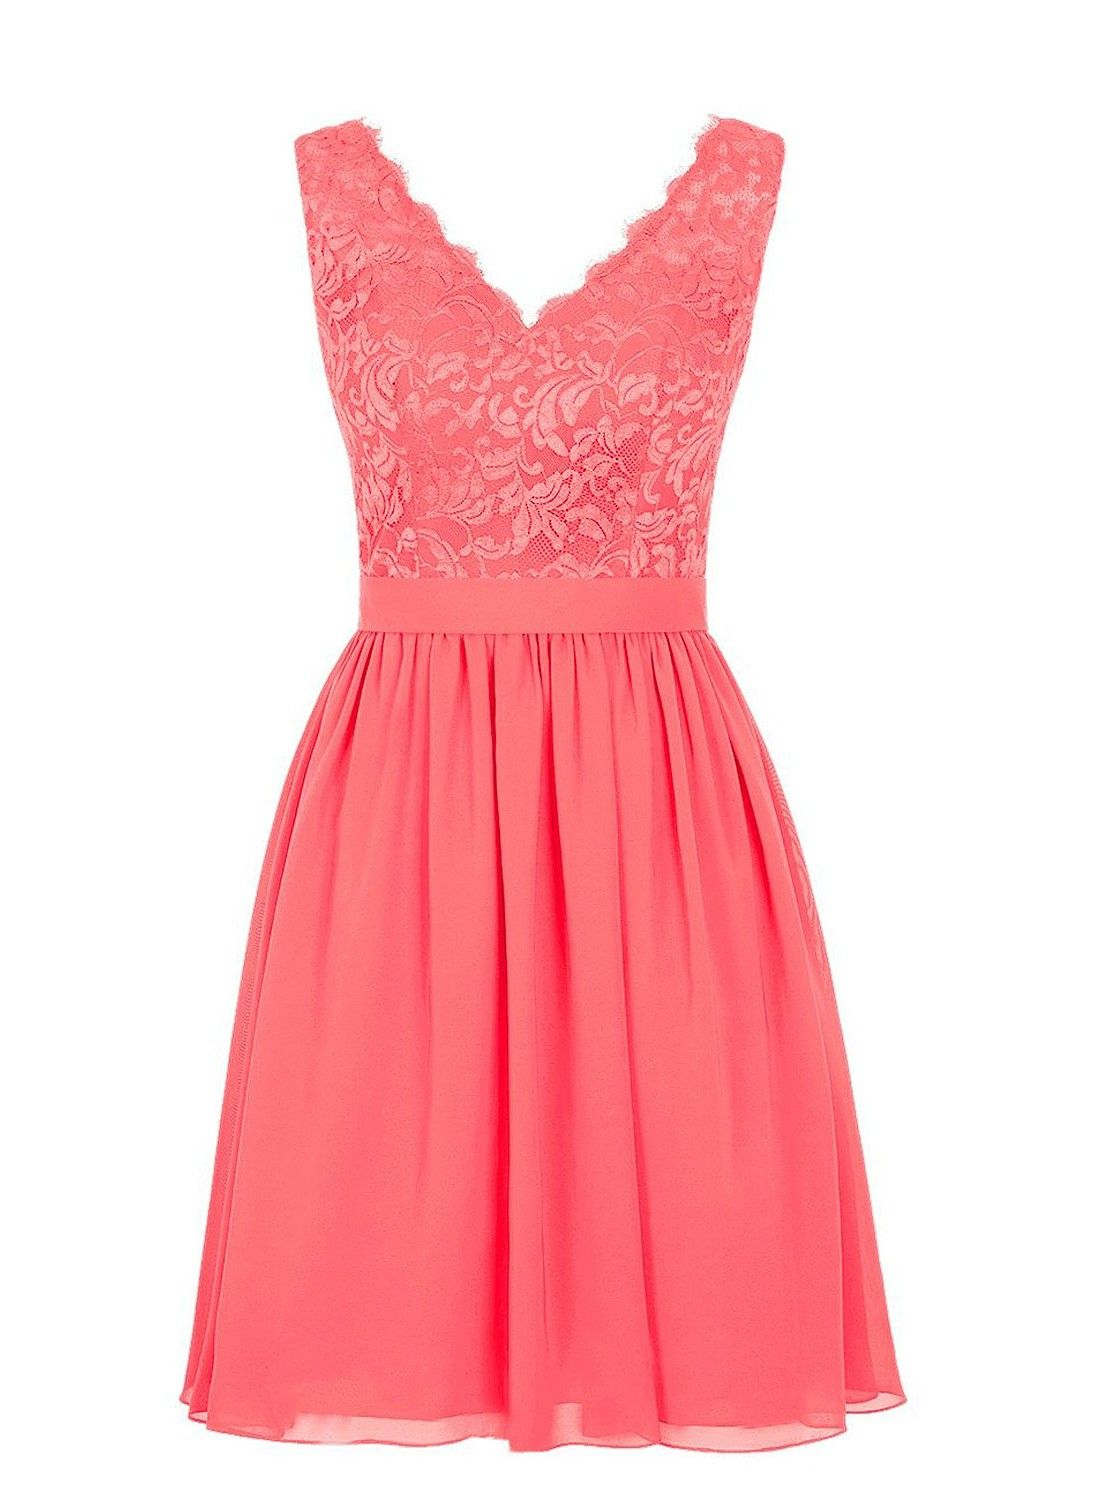 Elegant vneck short chiffon coral bridesmaid dresswedding party